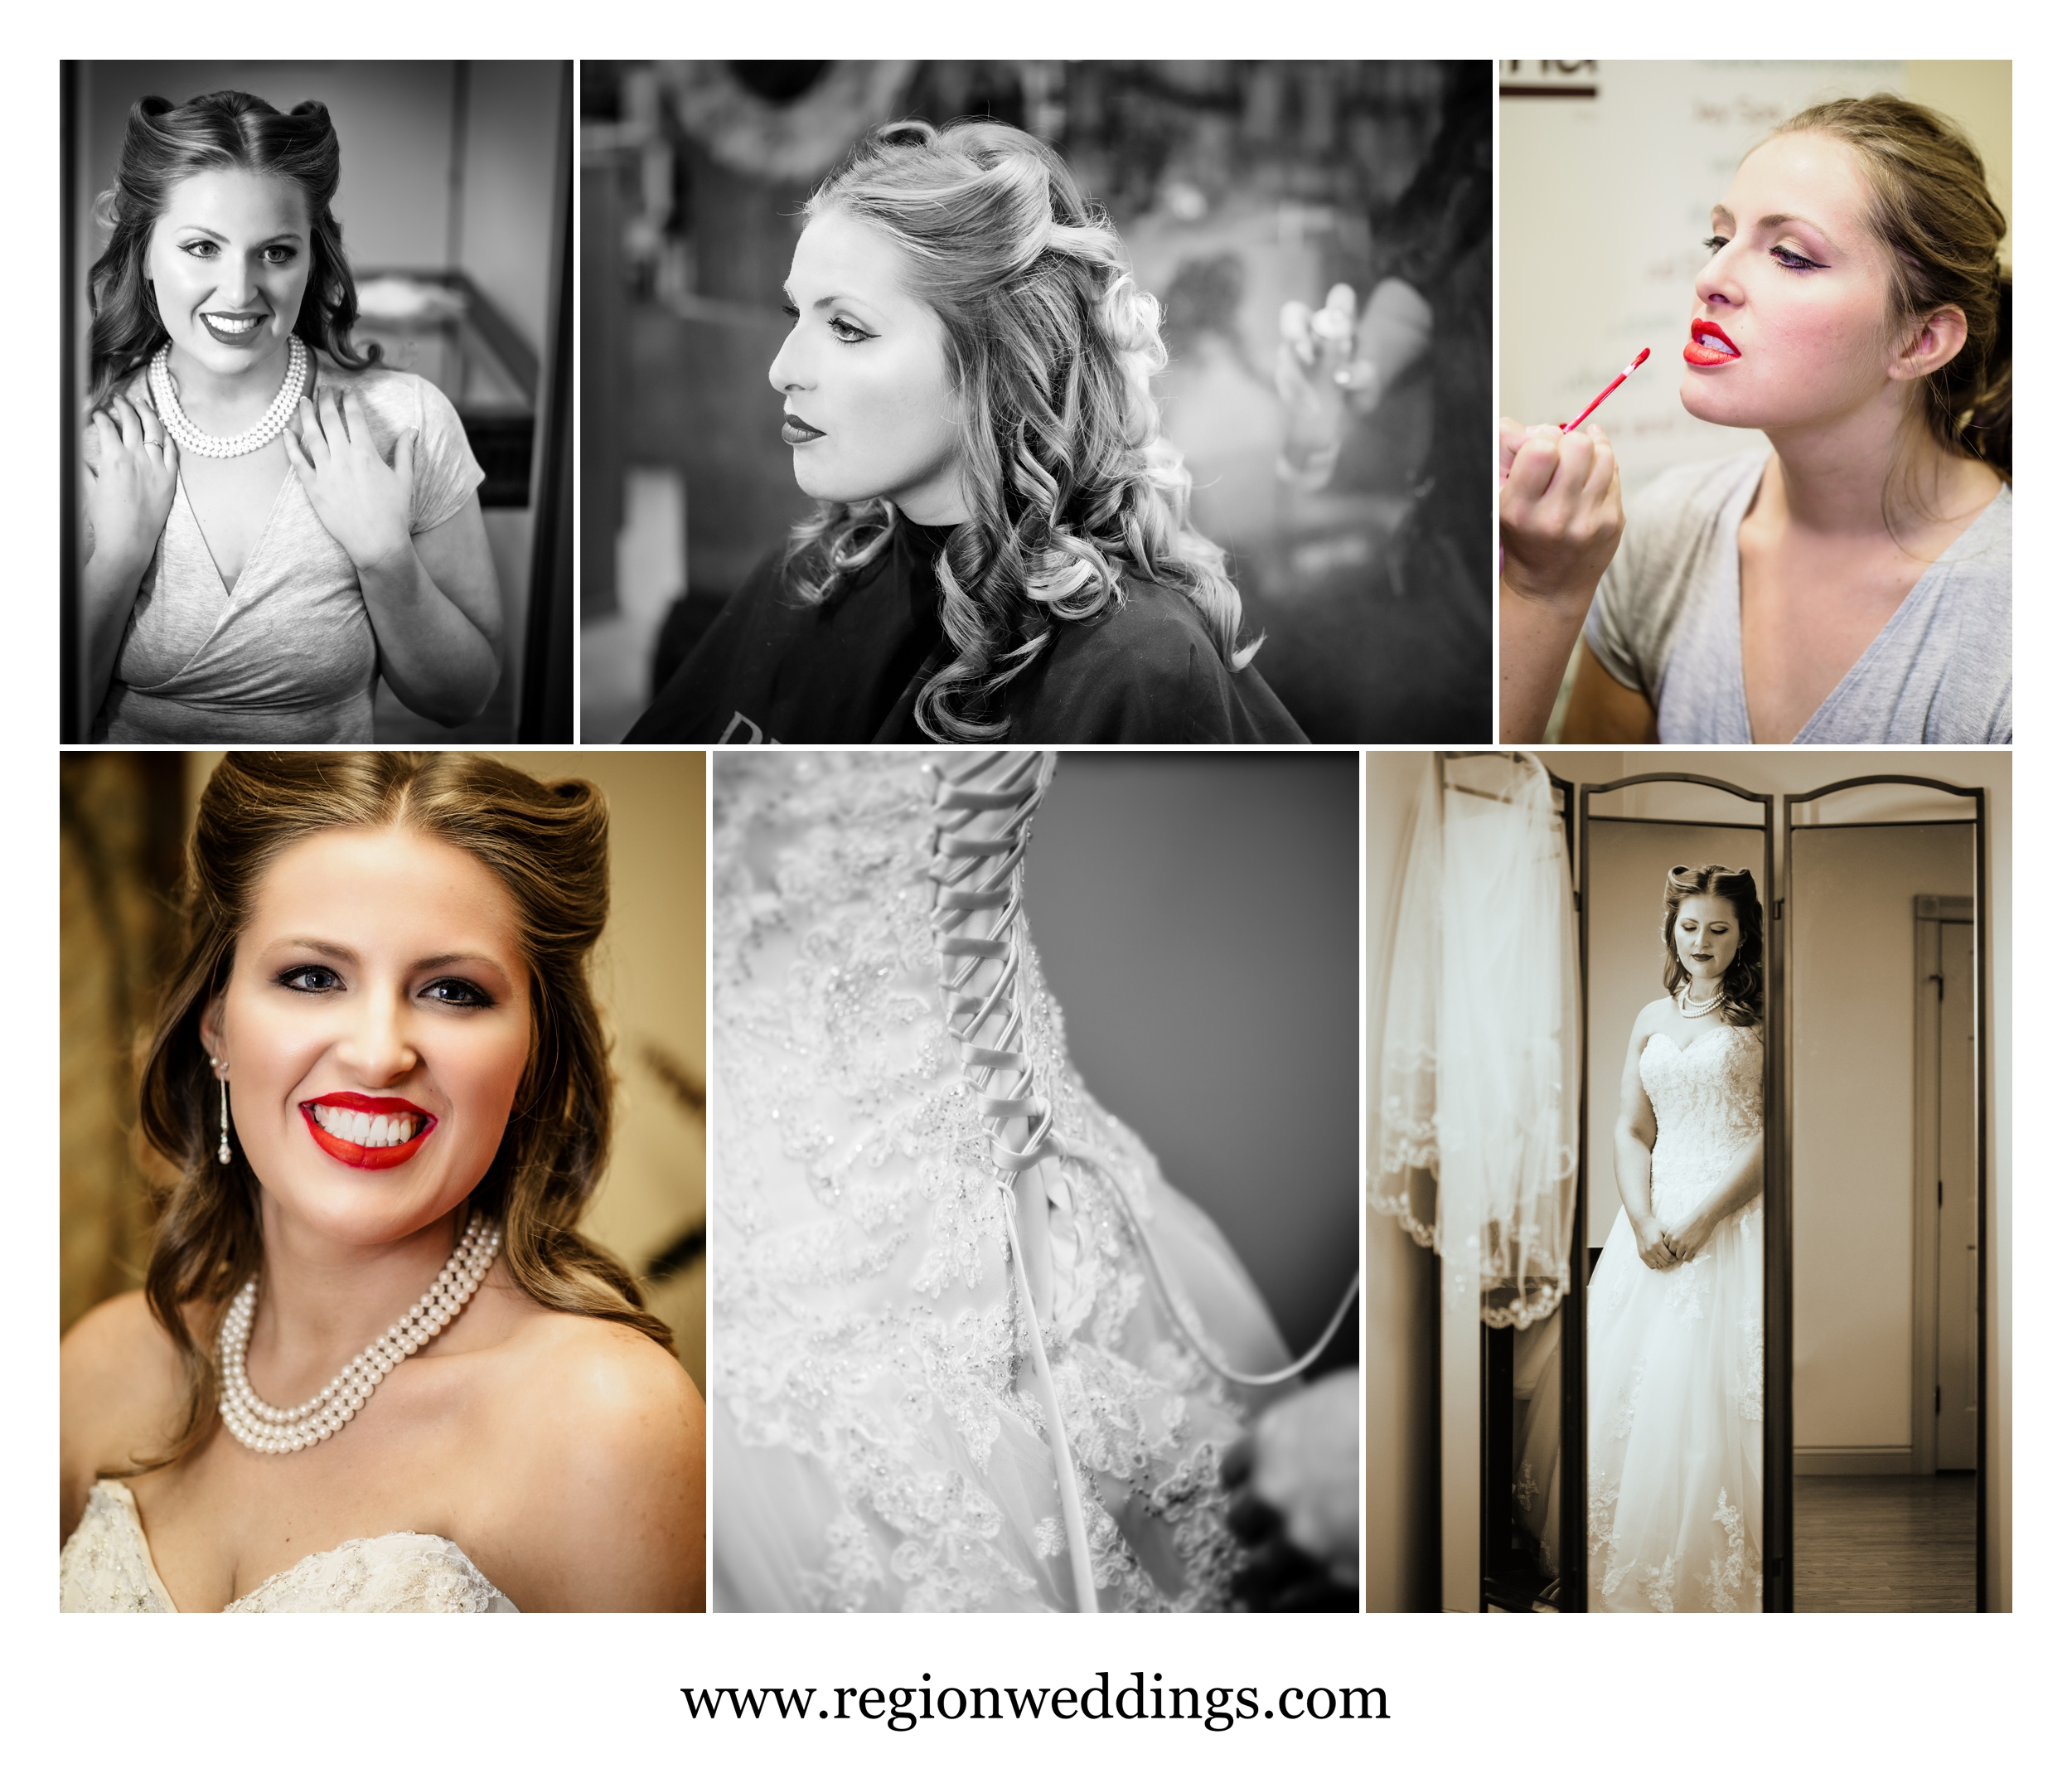 Bridal prep at State of Mind Salon in Crown Point, IN